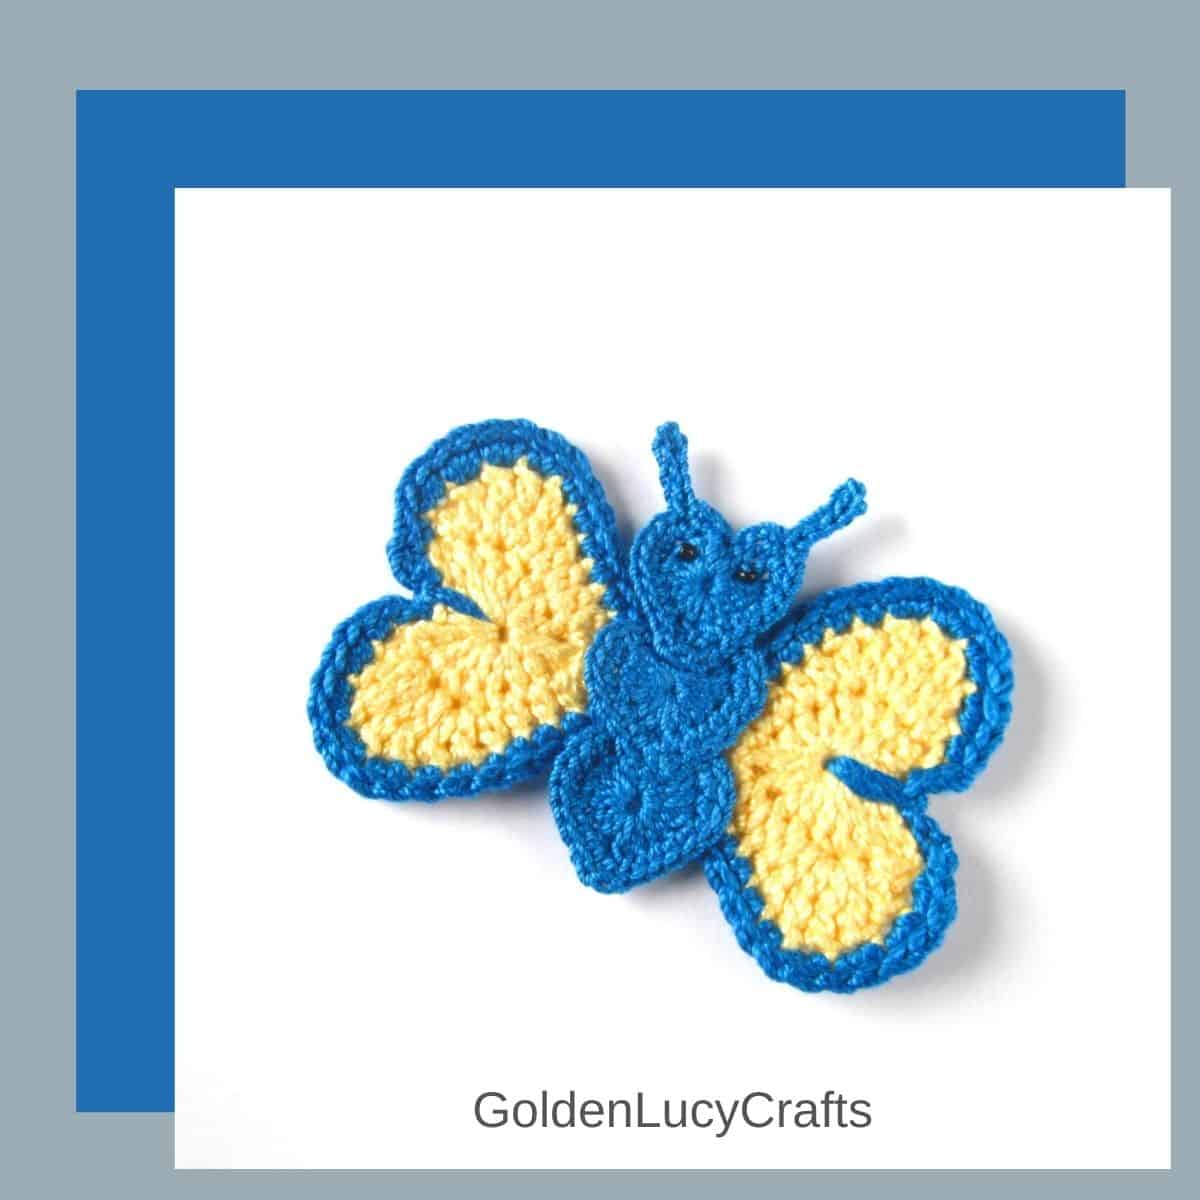 Crochet butterfly applique in blue and yellow colors.